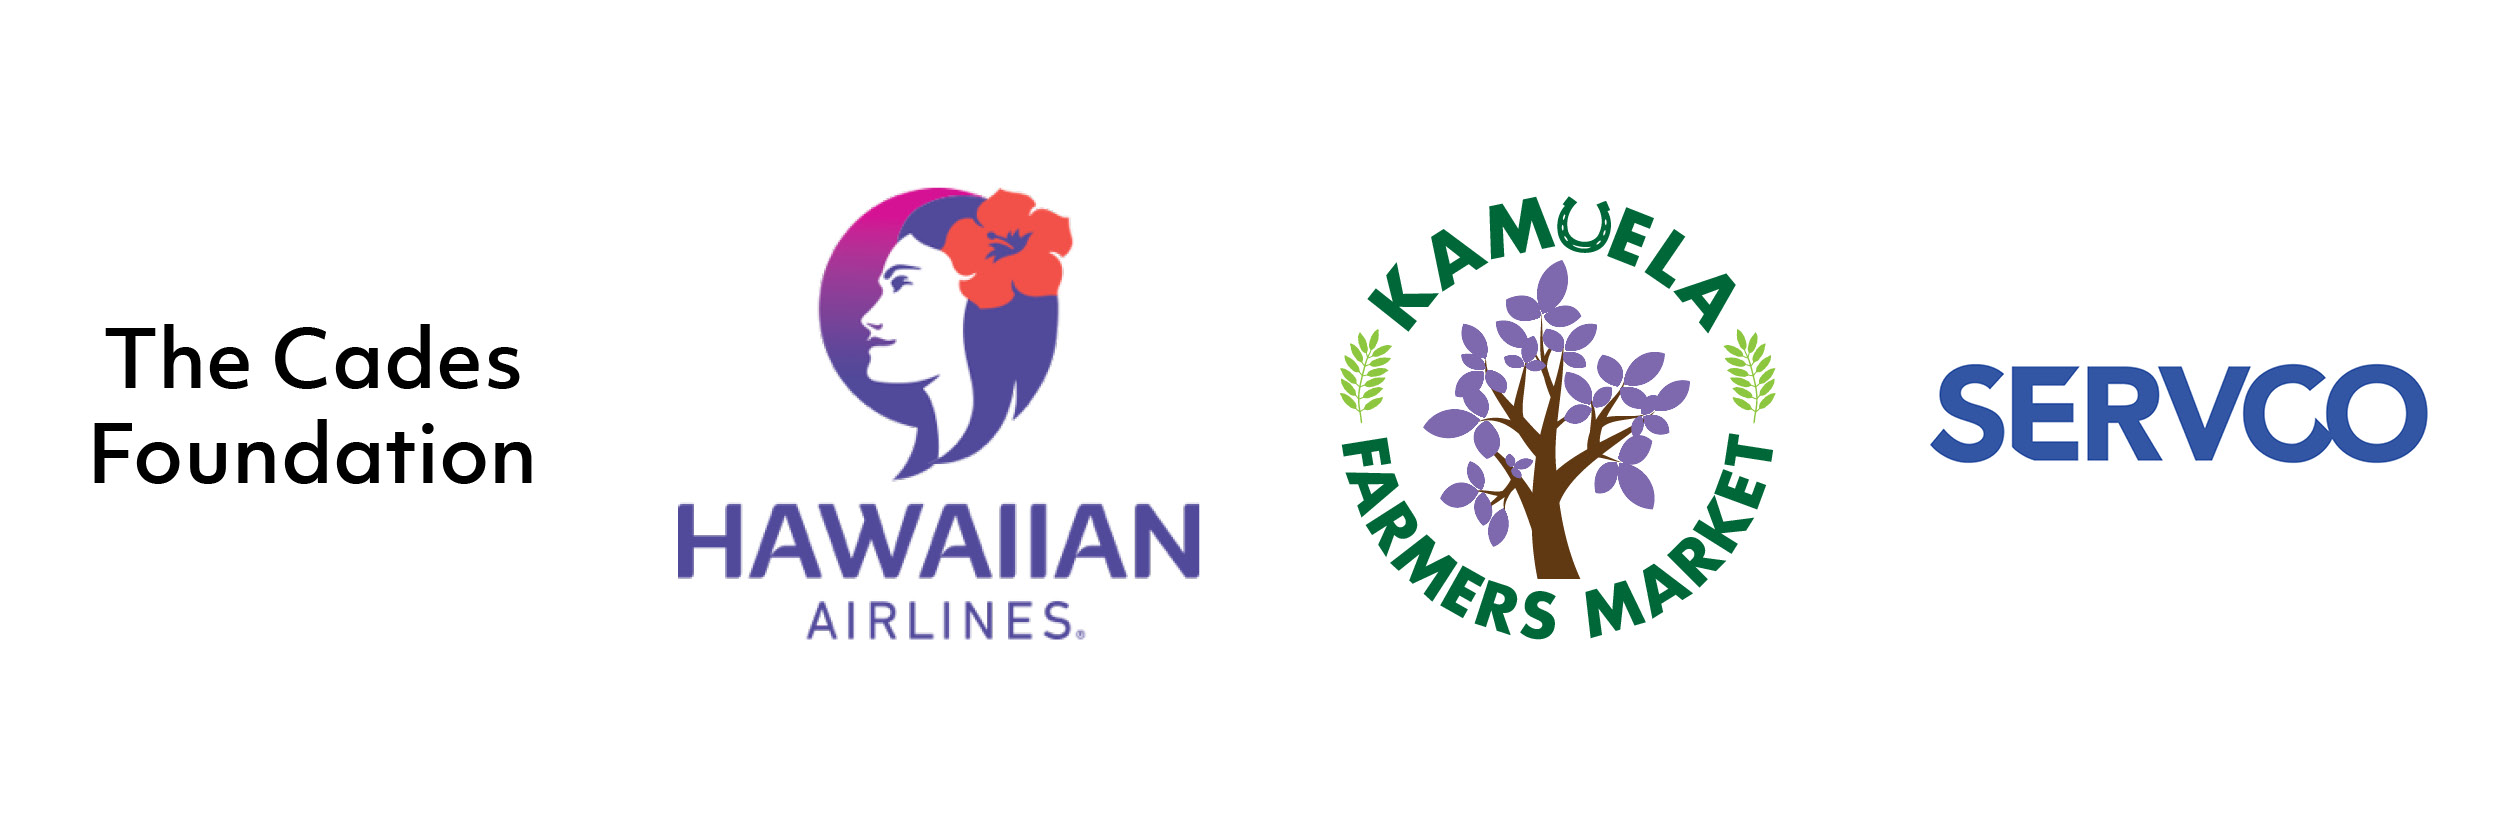 Sponsored by The Cades Foundation, Hawaiian Airlines, Kamuela Farmers Market, & Servco